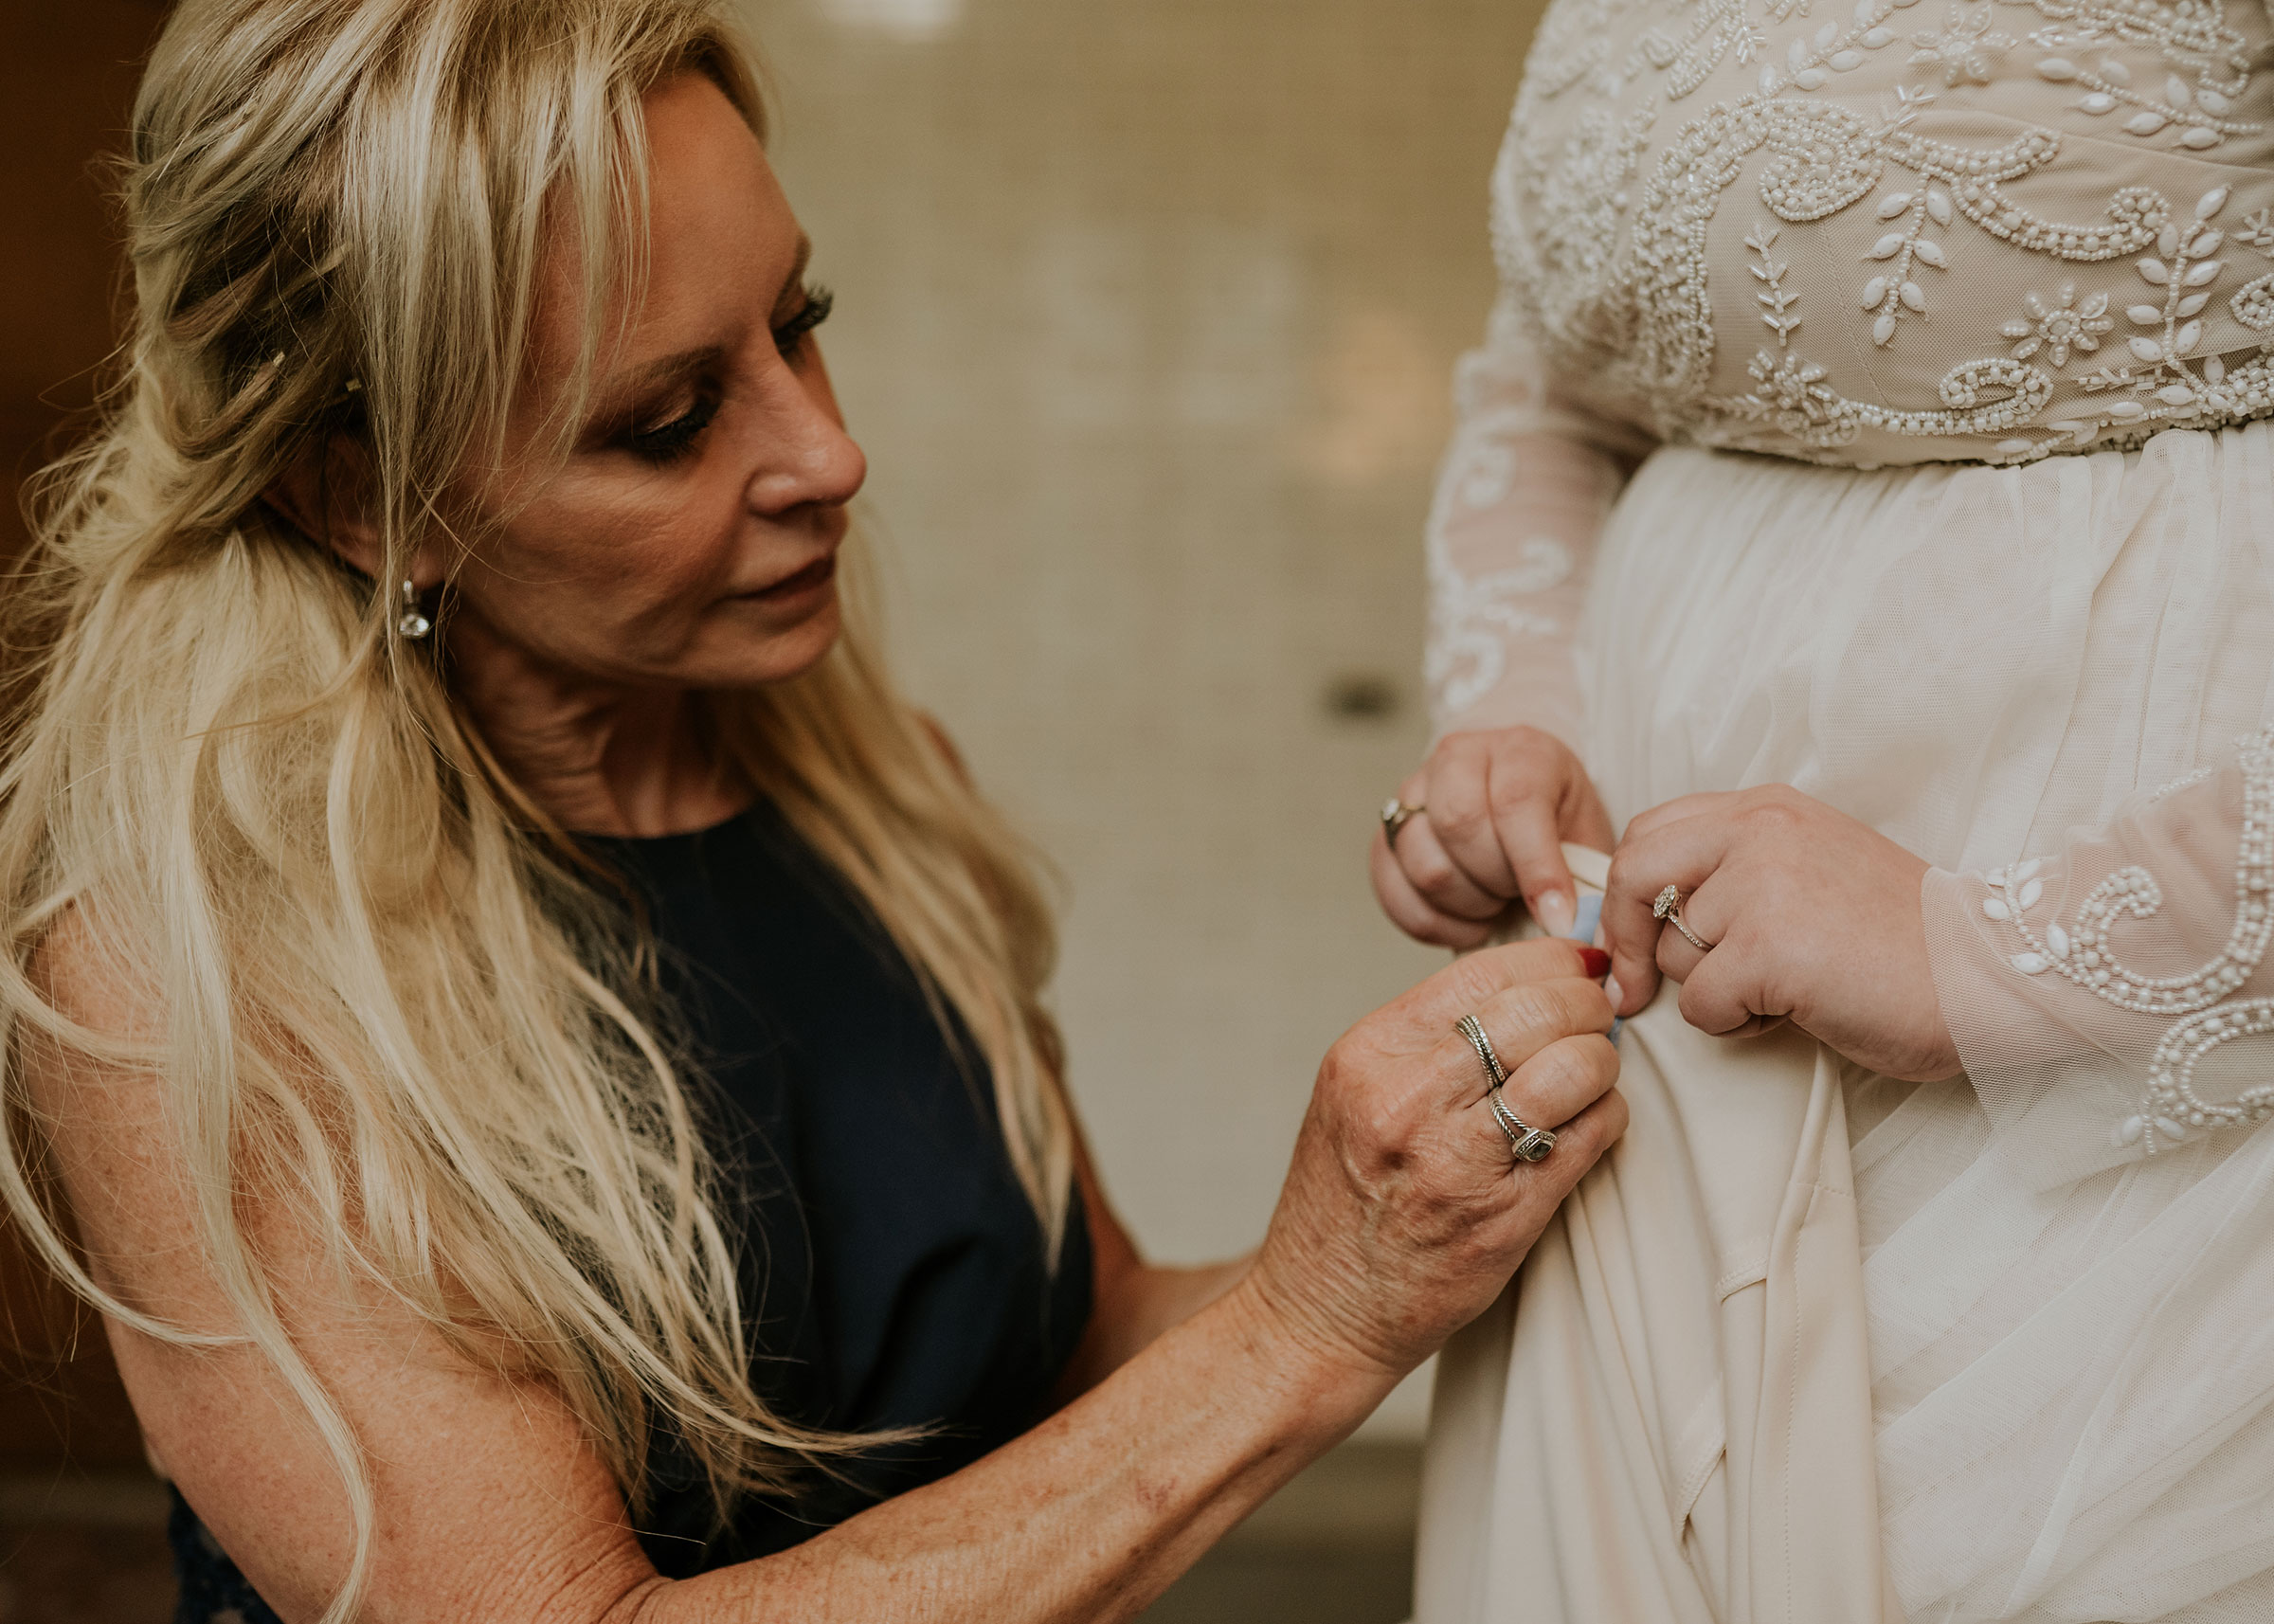 mother-pinning-grnadfathers-fabric-to-brides-dress-elopement-salisbury-house-desmoines-iowa-raelyn-ramey-photography.jpg